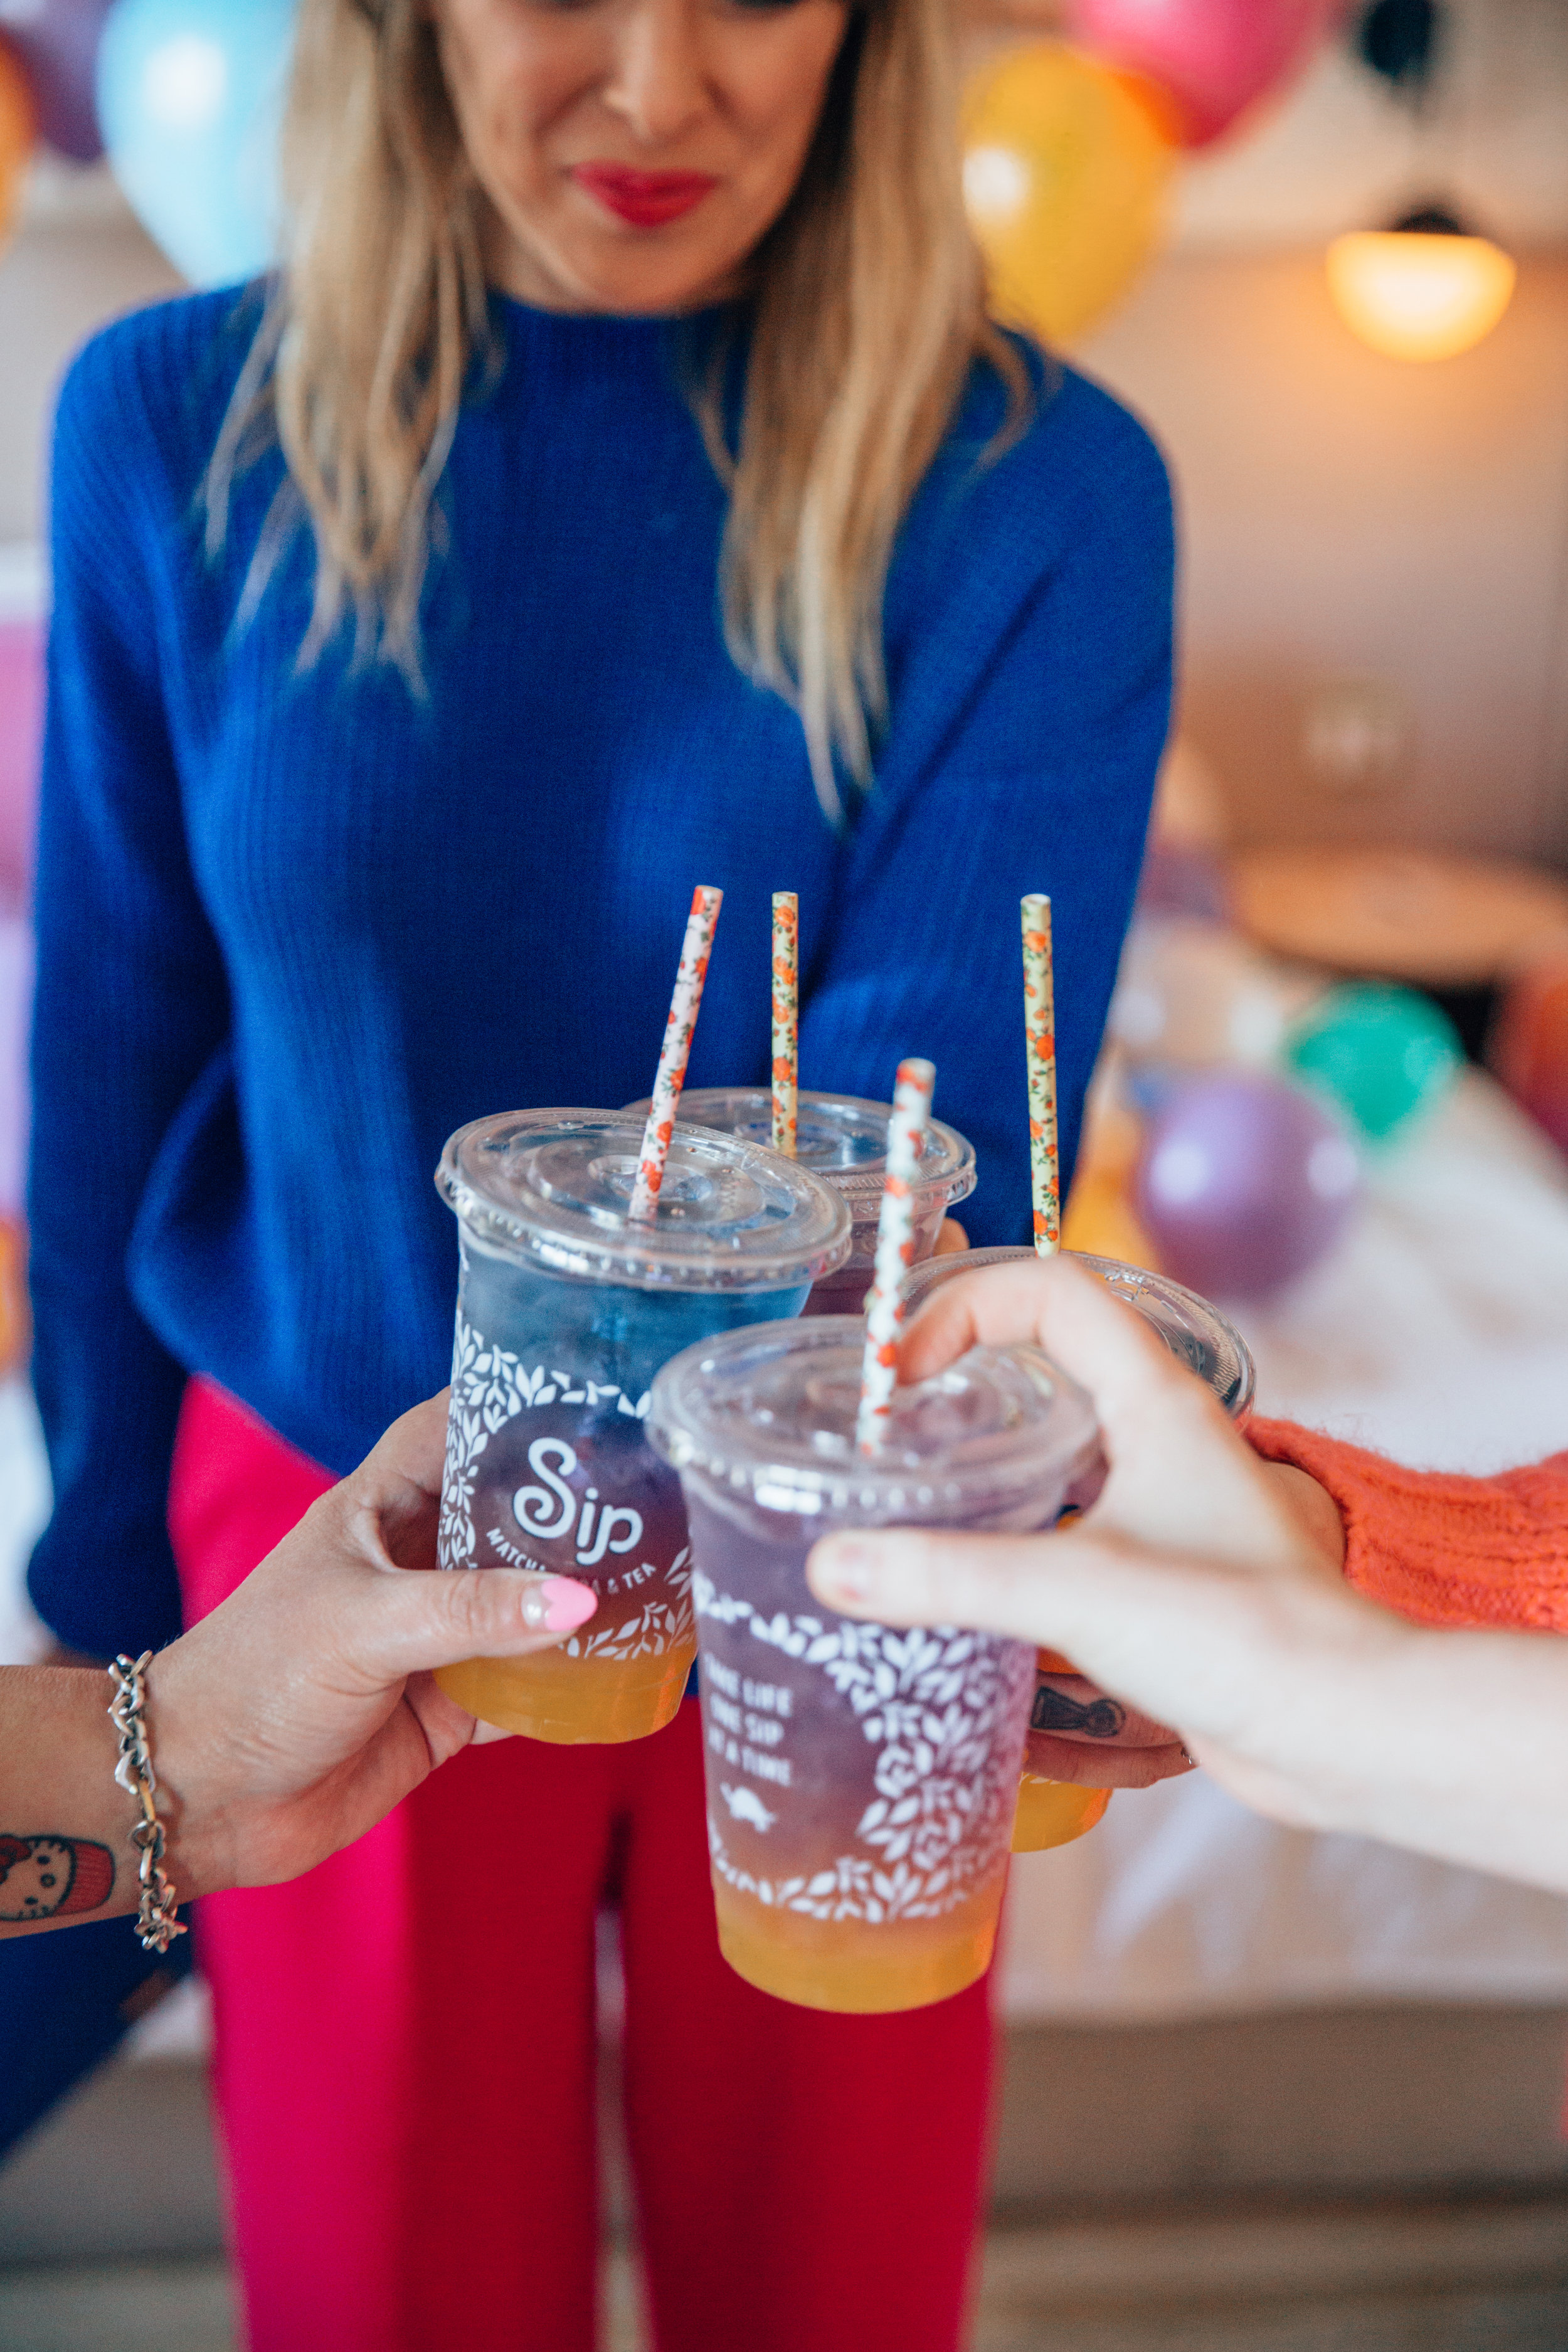 Cheers to the perfect sip of sunset from  Sip !